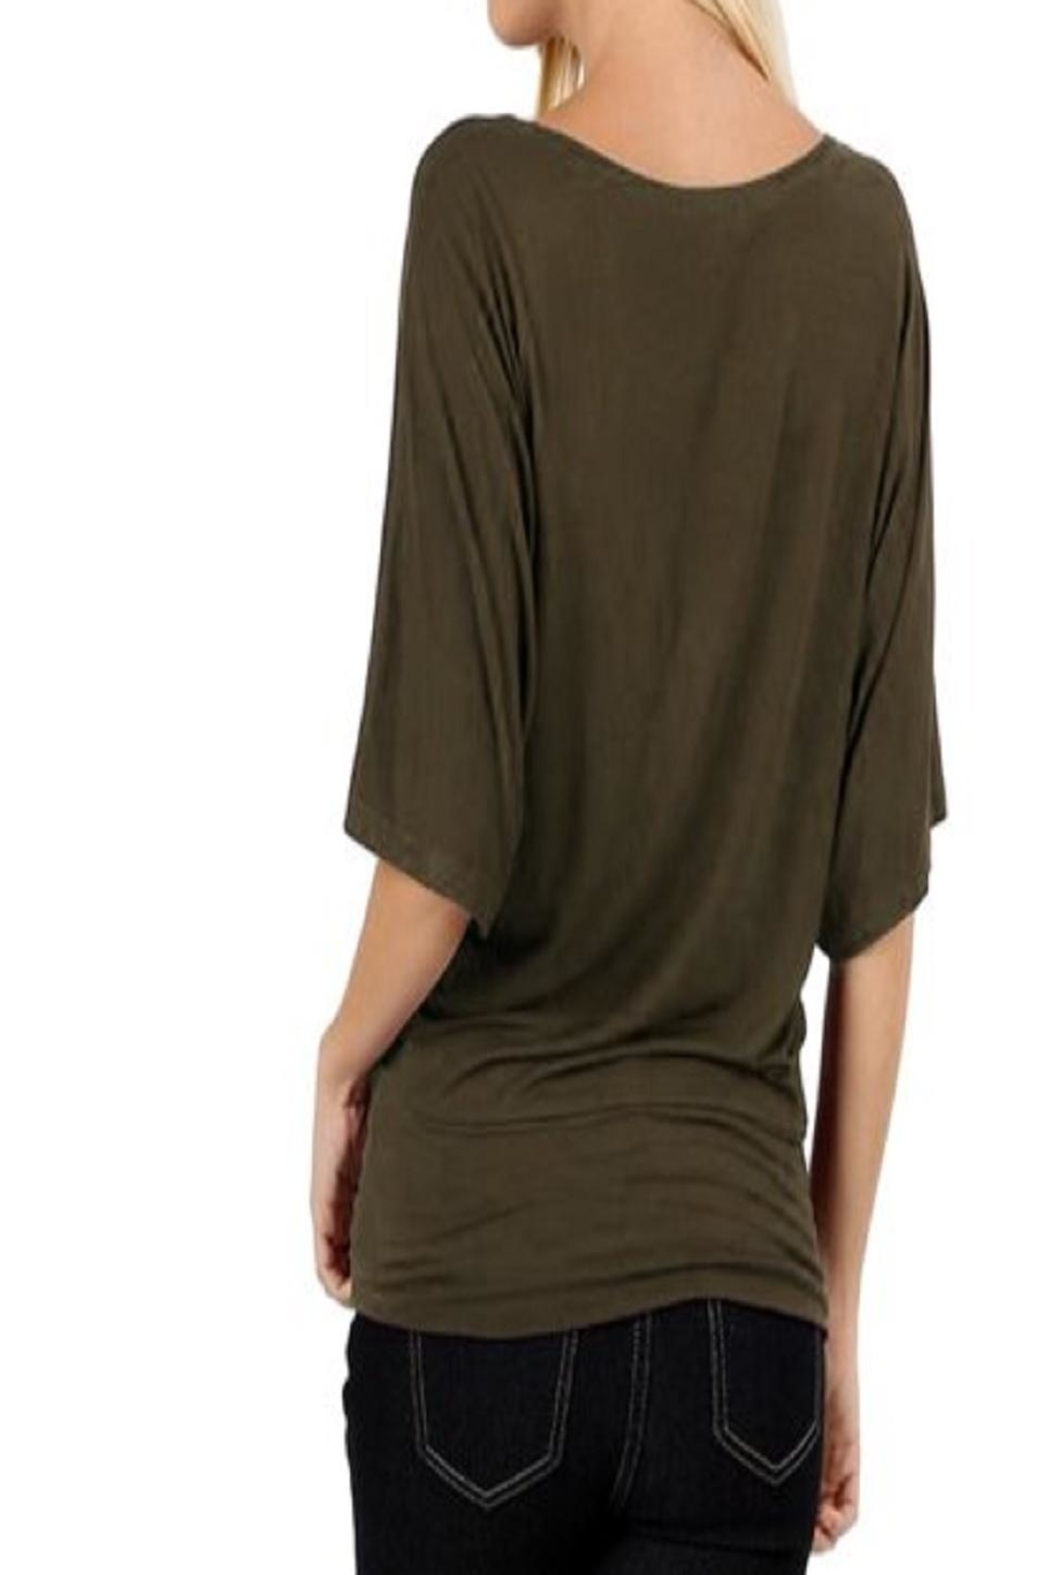 Zenana Outfitters Olive Dolman Kimono-Top - Front Full Image